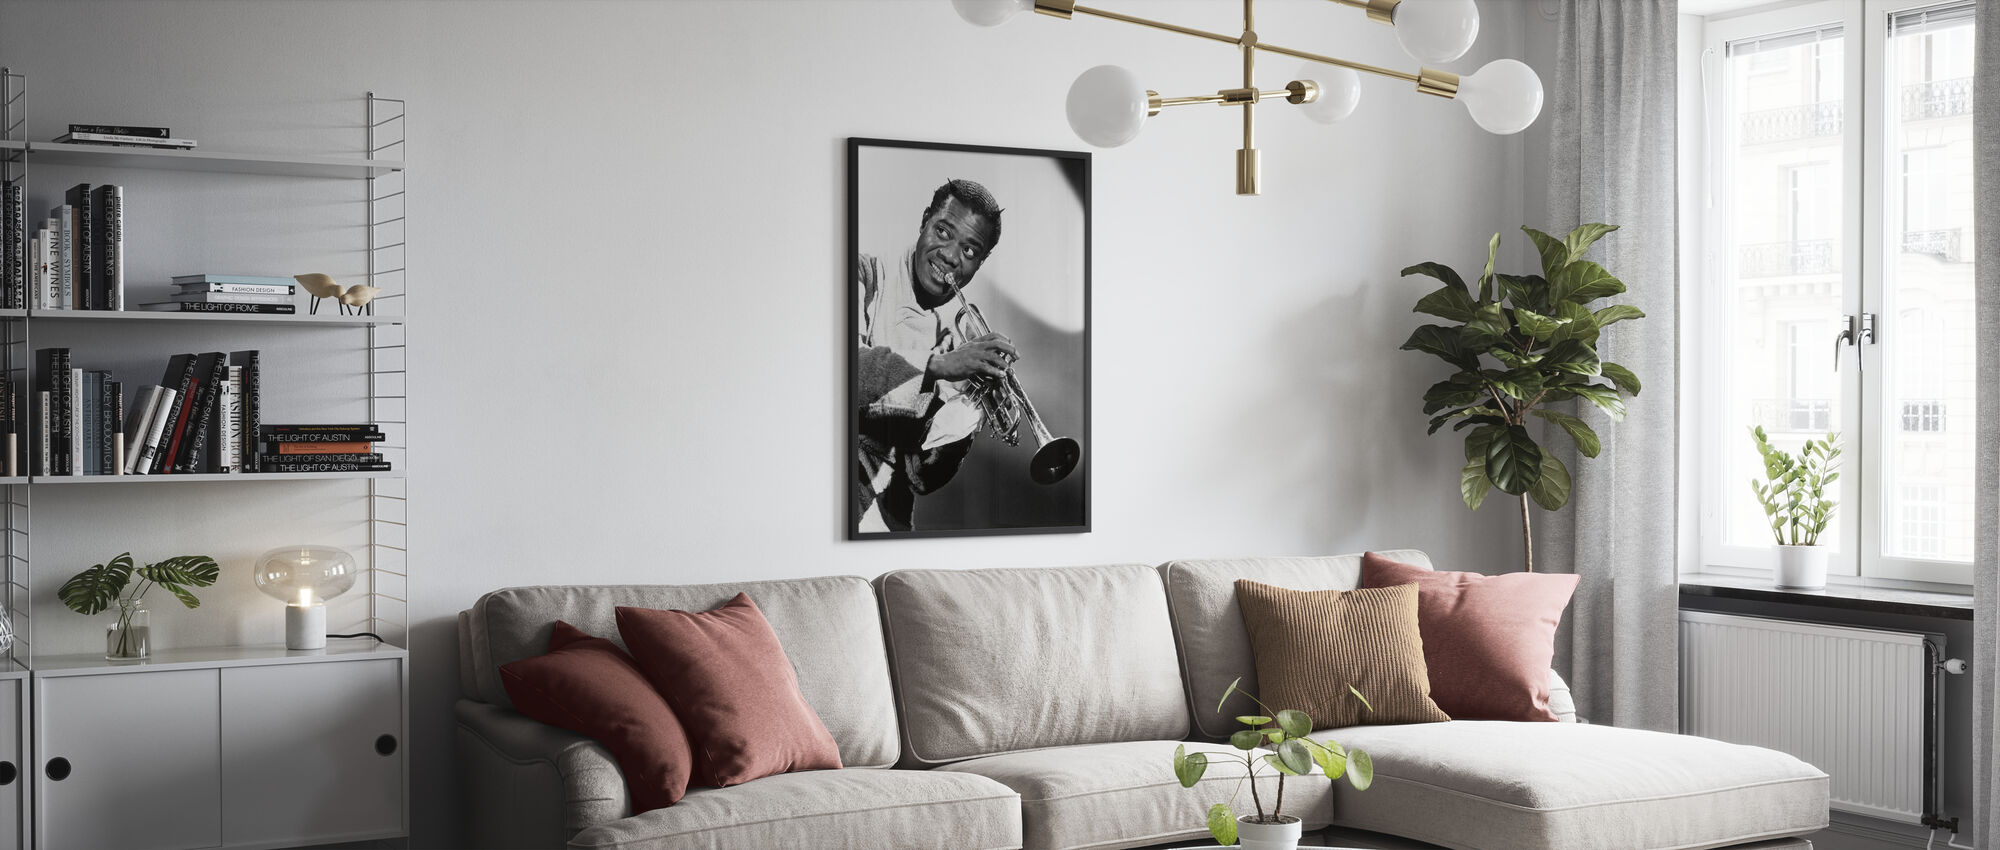 Cabin in the Sky - Louis Armstrong - Poster - Living Room